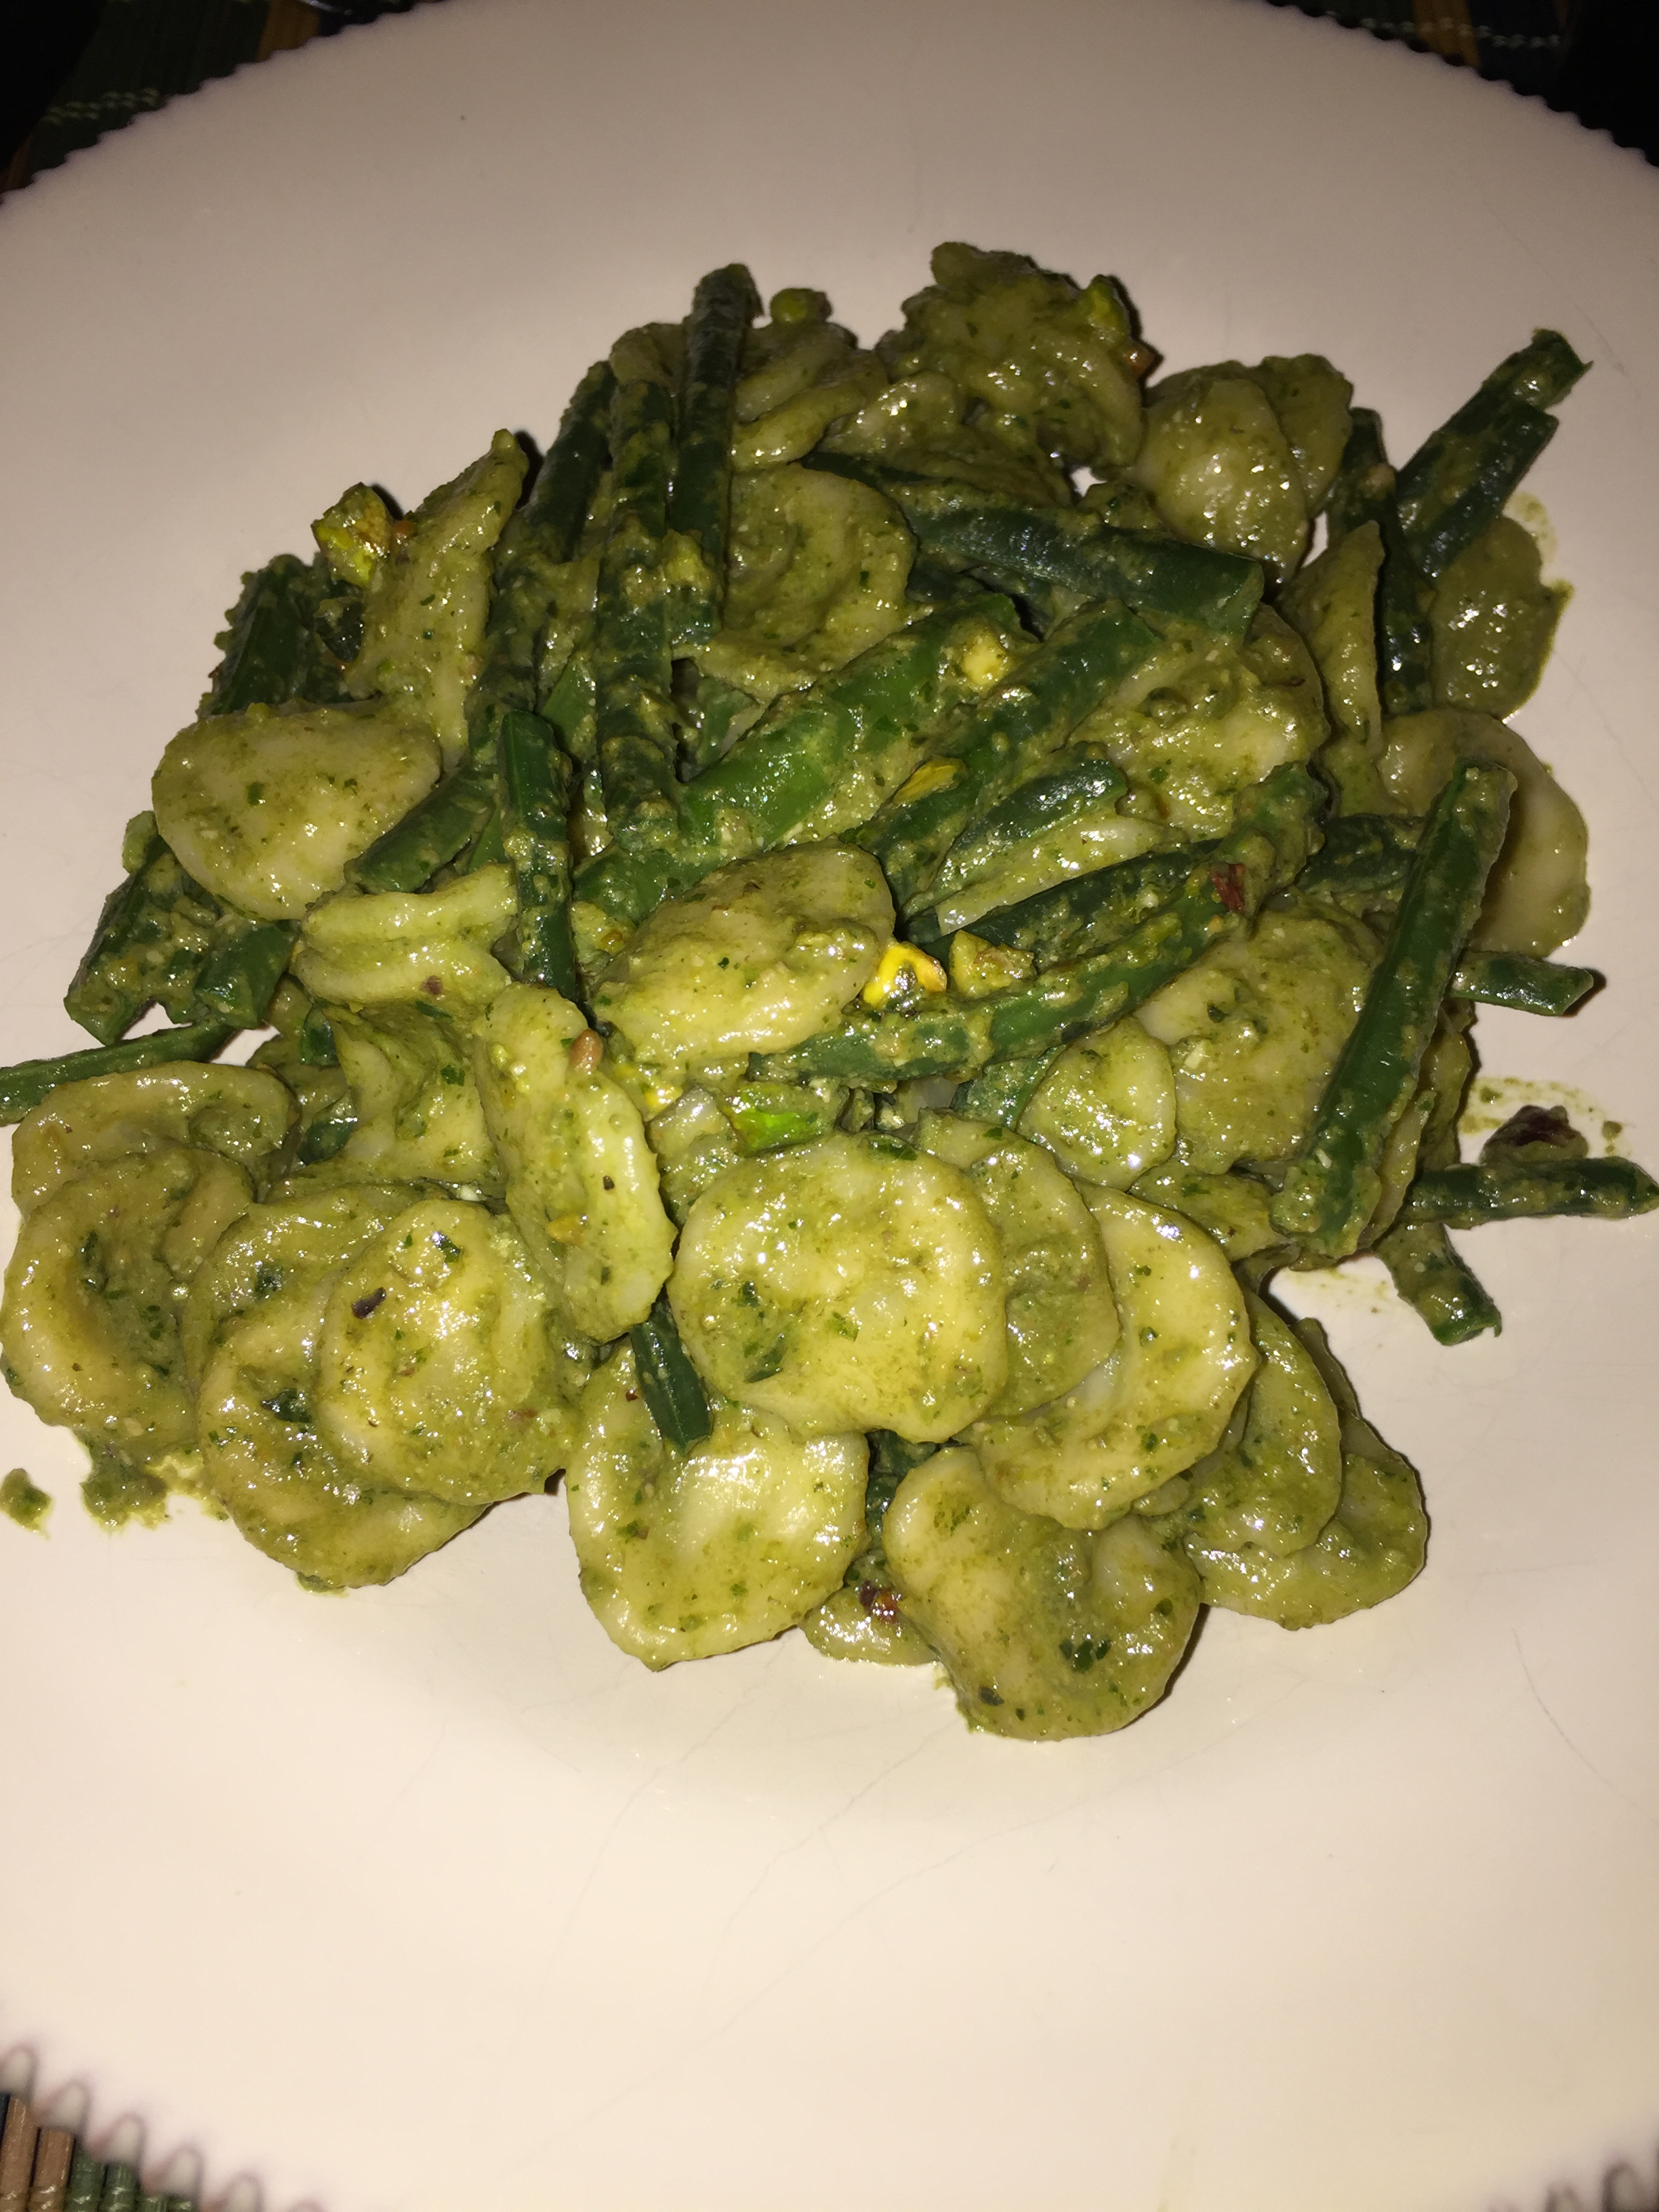 ... With Basil and Pistachio Pesto and Green Paesano Beans | Italicious